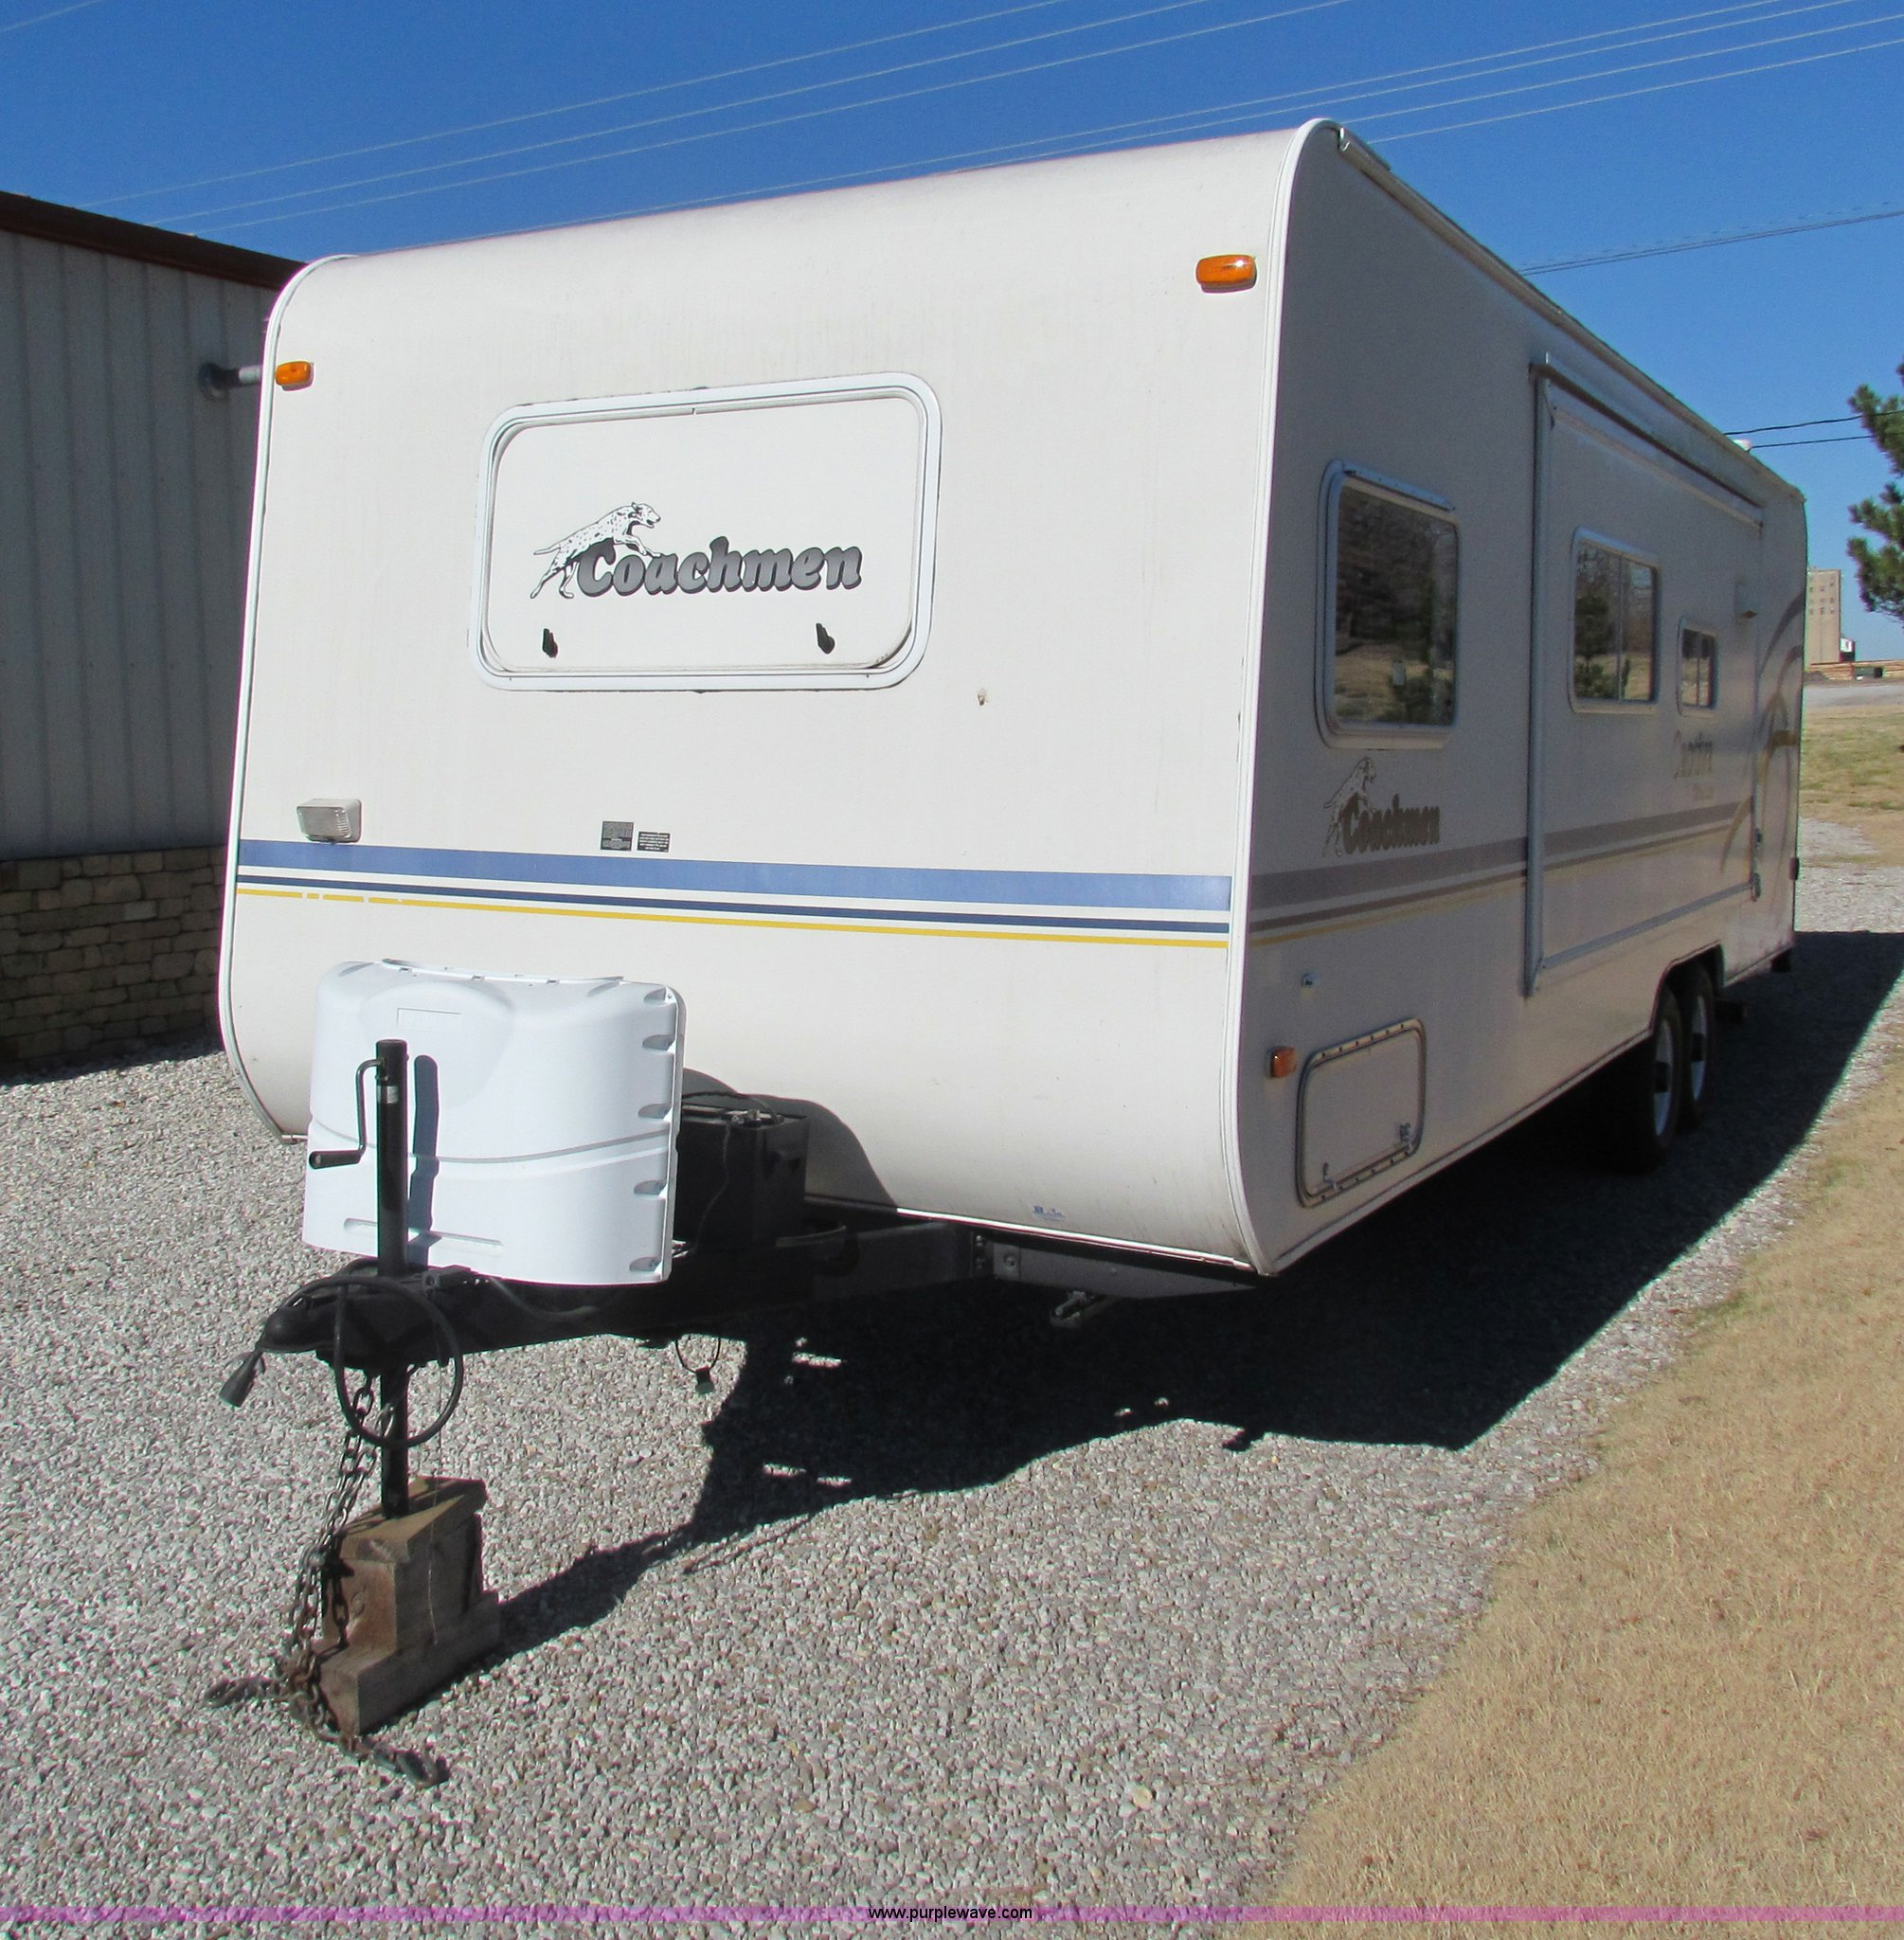 lighting trailers trailer ultralight window travel new size light auction in full ultra item coachman captiva